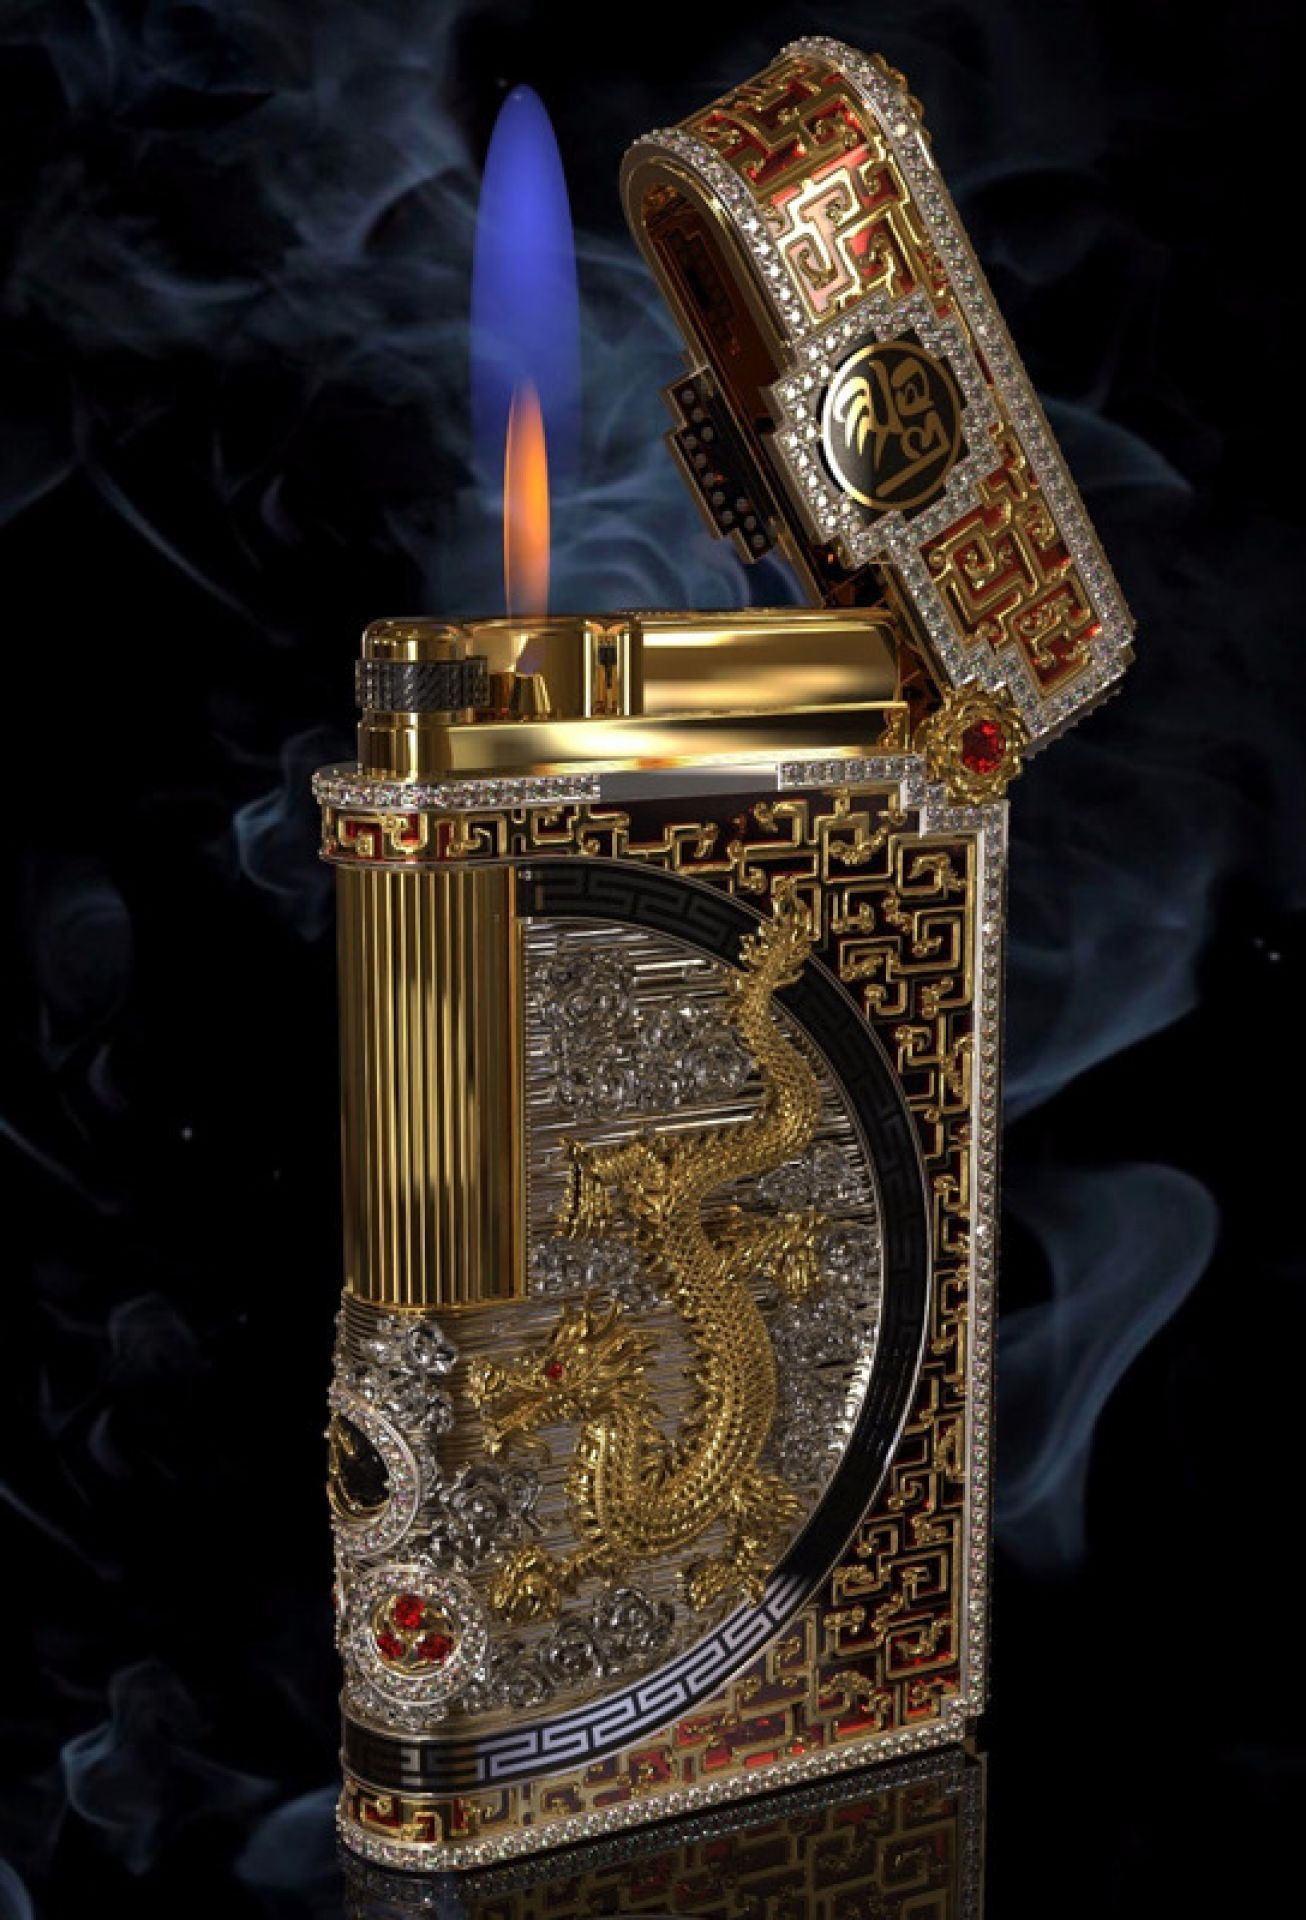 Bespoke 18k Gold & Diamonds Dragon lighter by Legend - Bespoke designs available